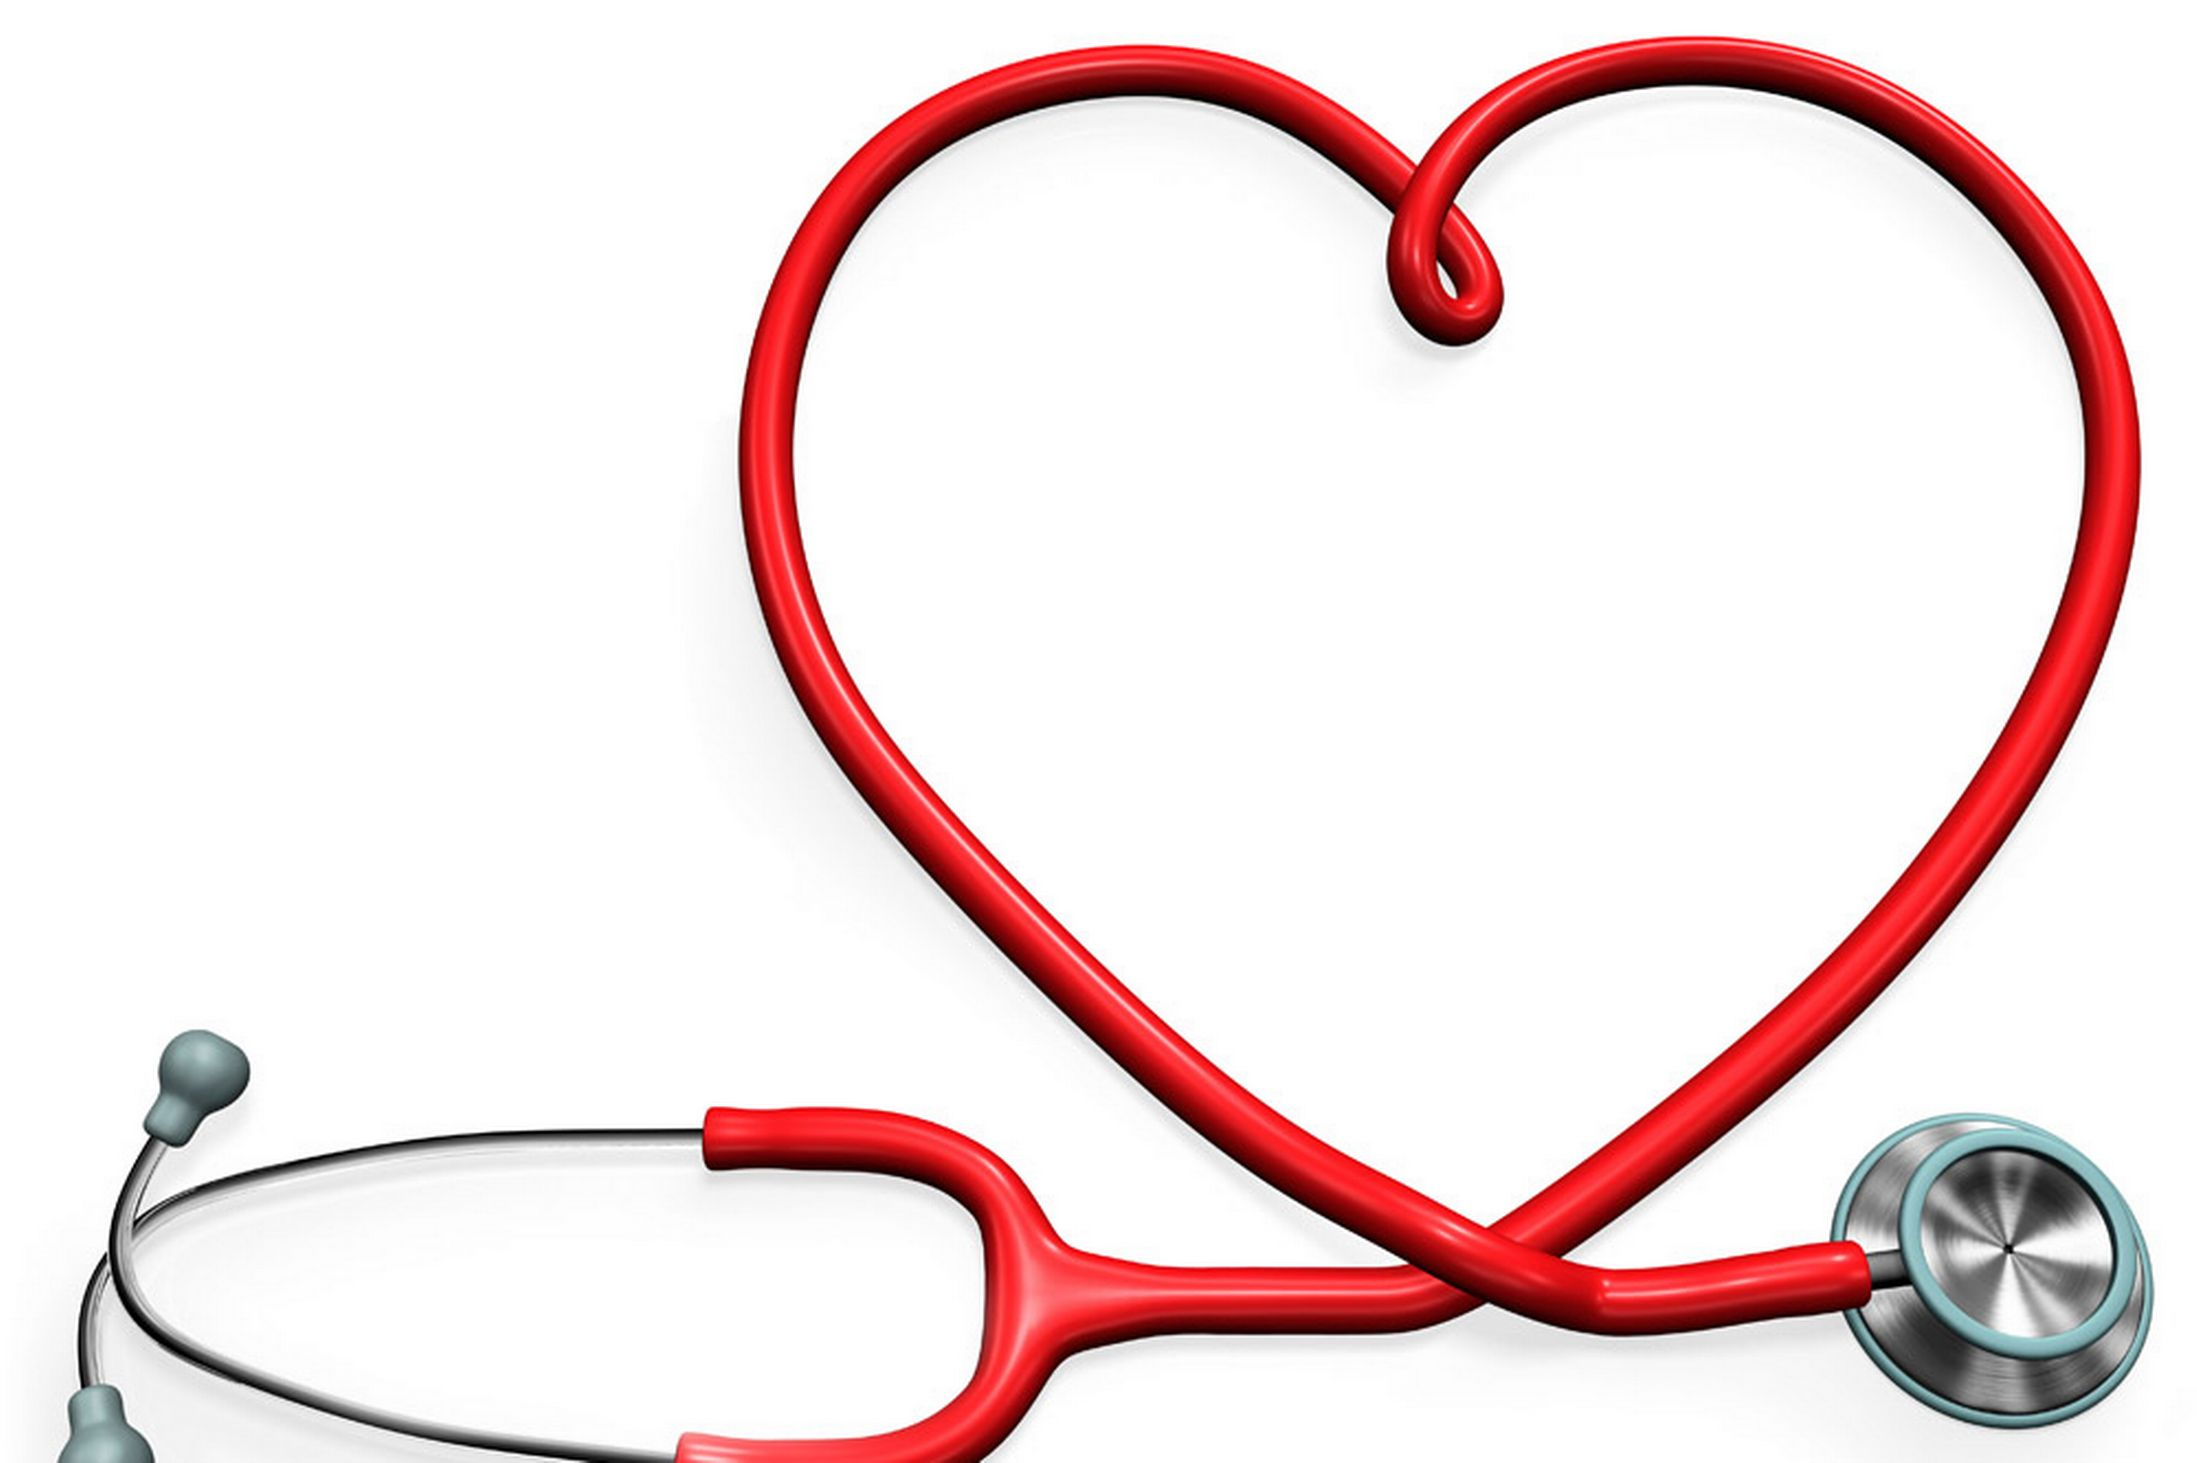 Heart with stethoscope clipart kid 3